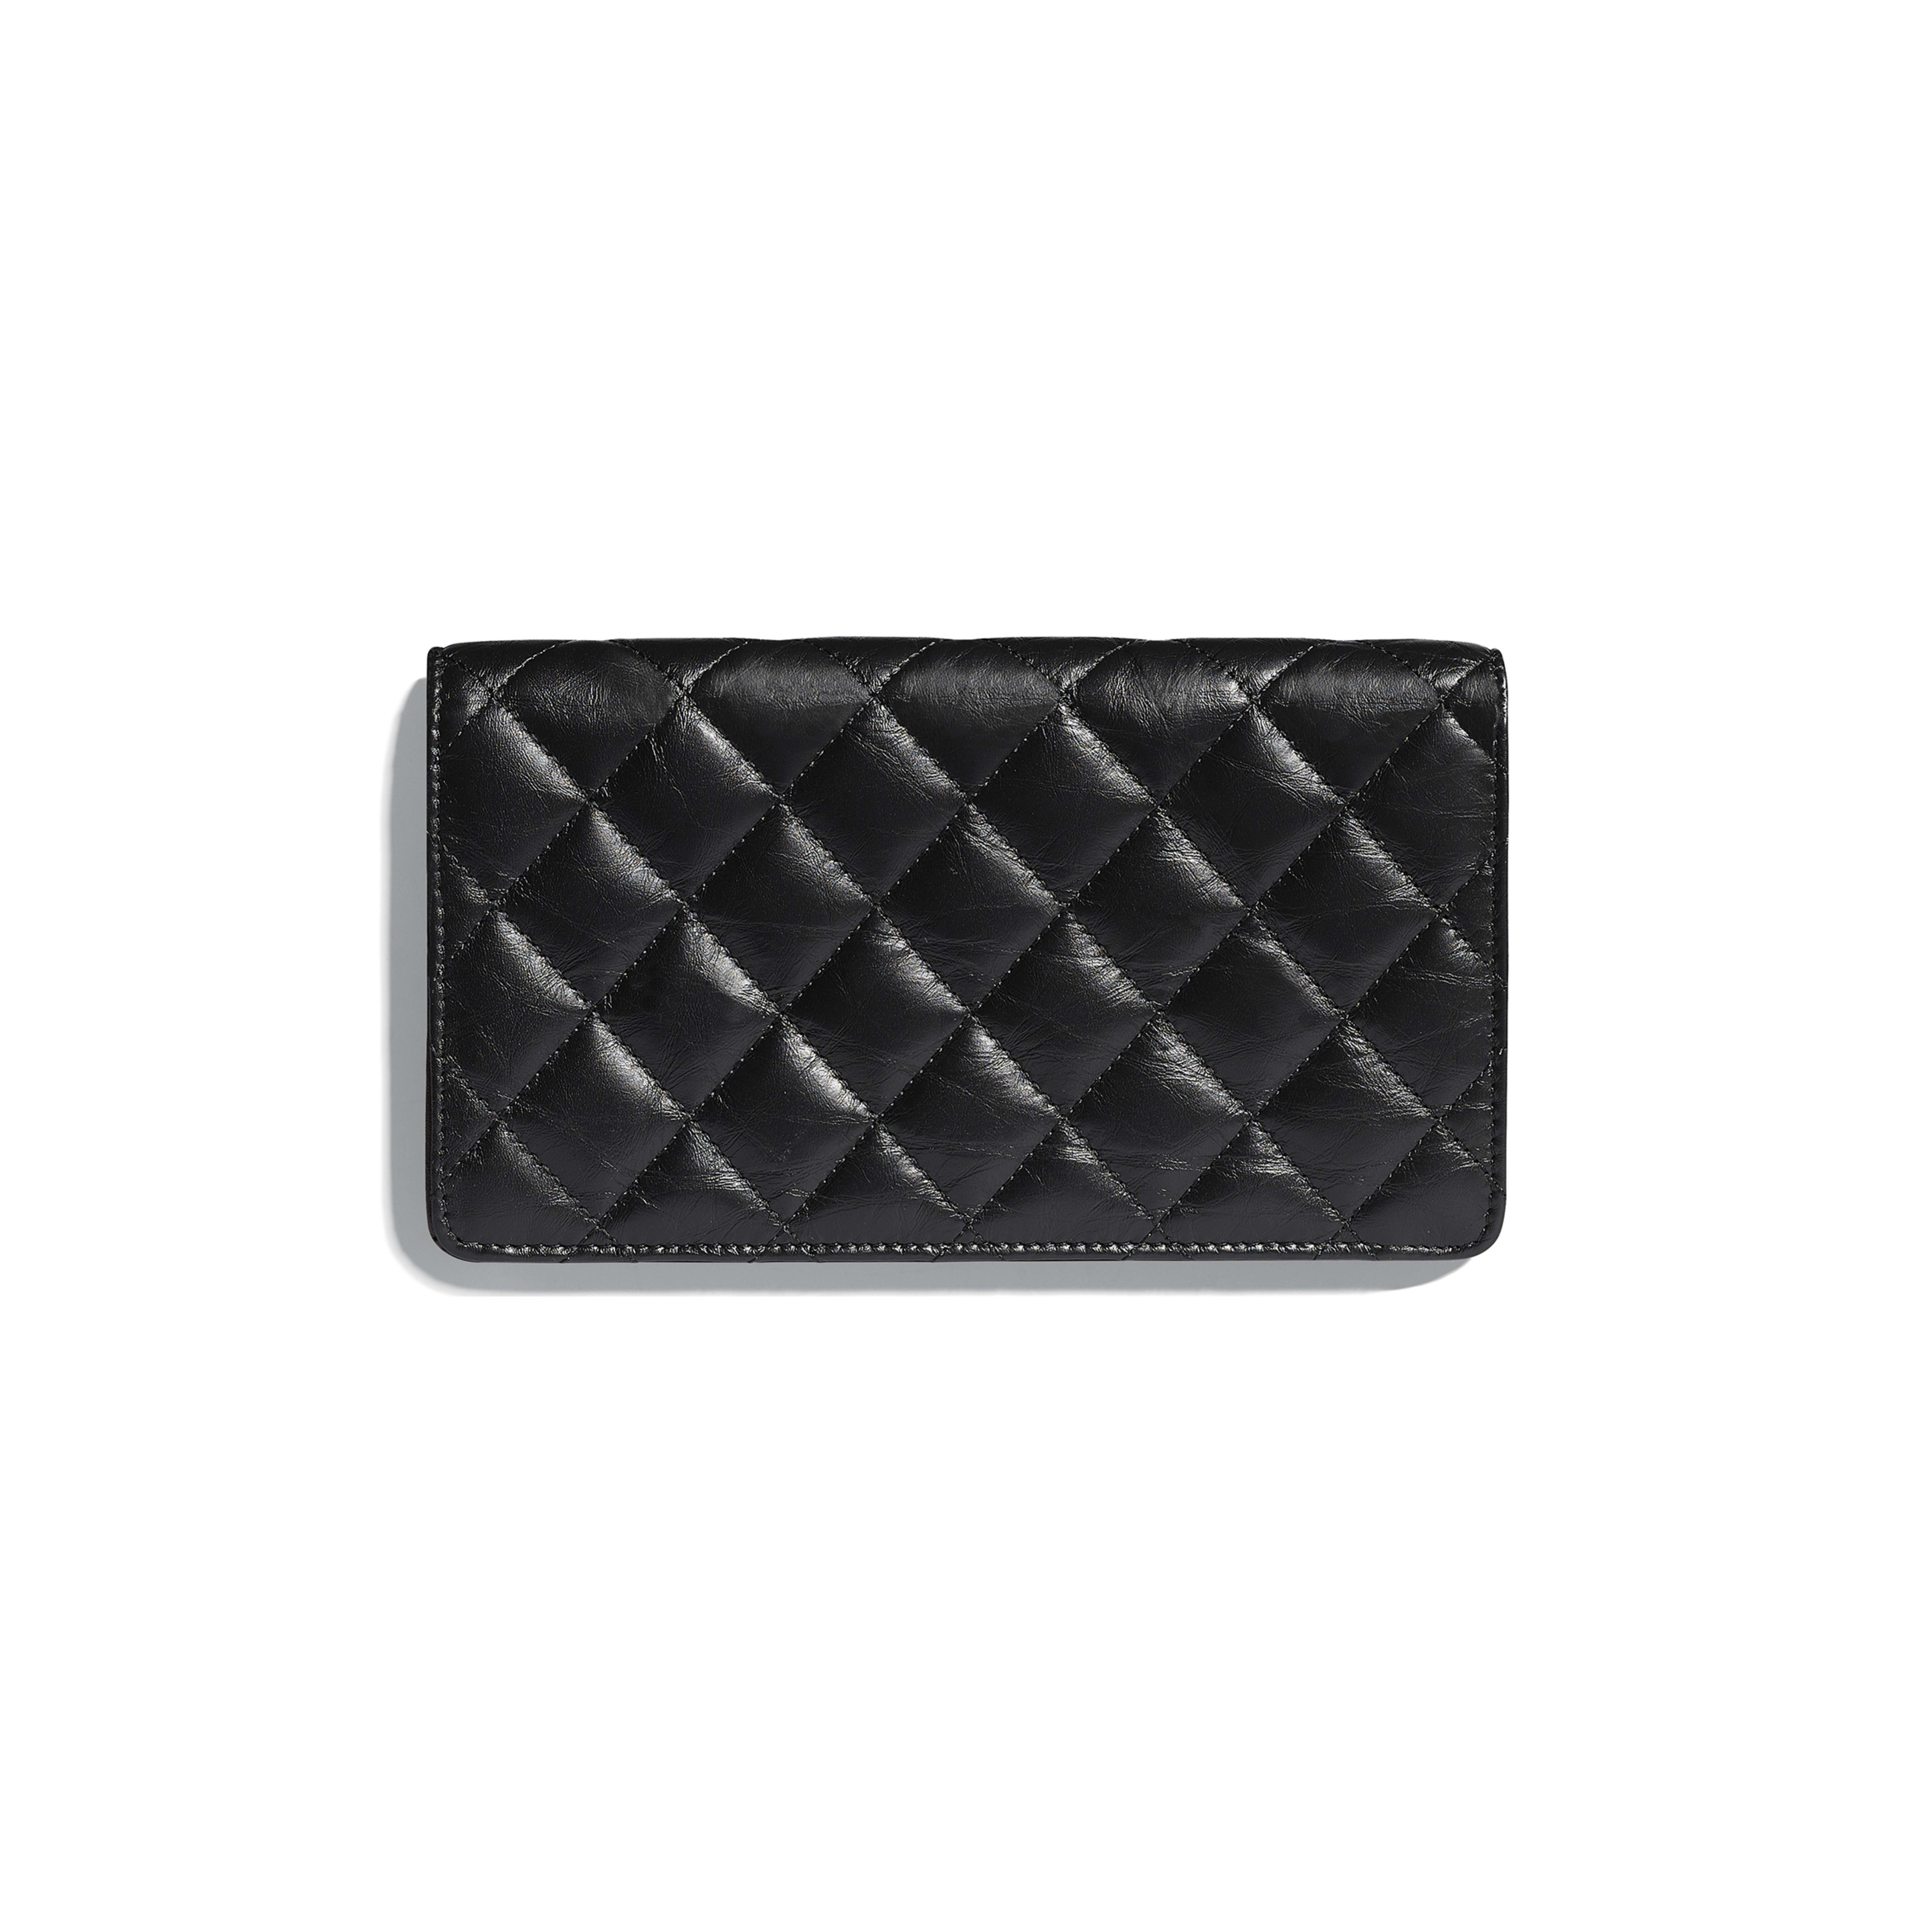 Double Wallet - Black - Aged Calfskin & Gold-Tone Metal - Alternative view - see full sized version